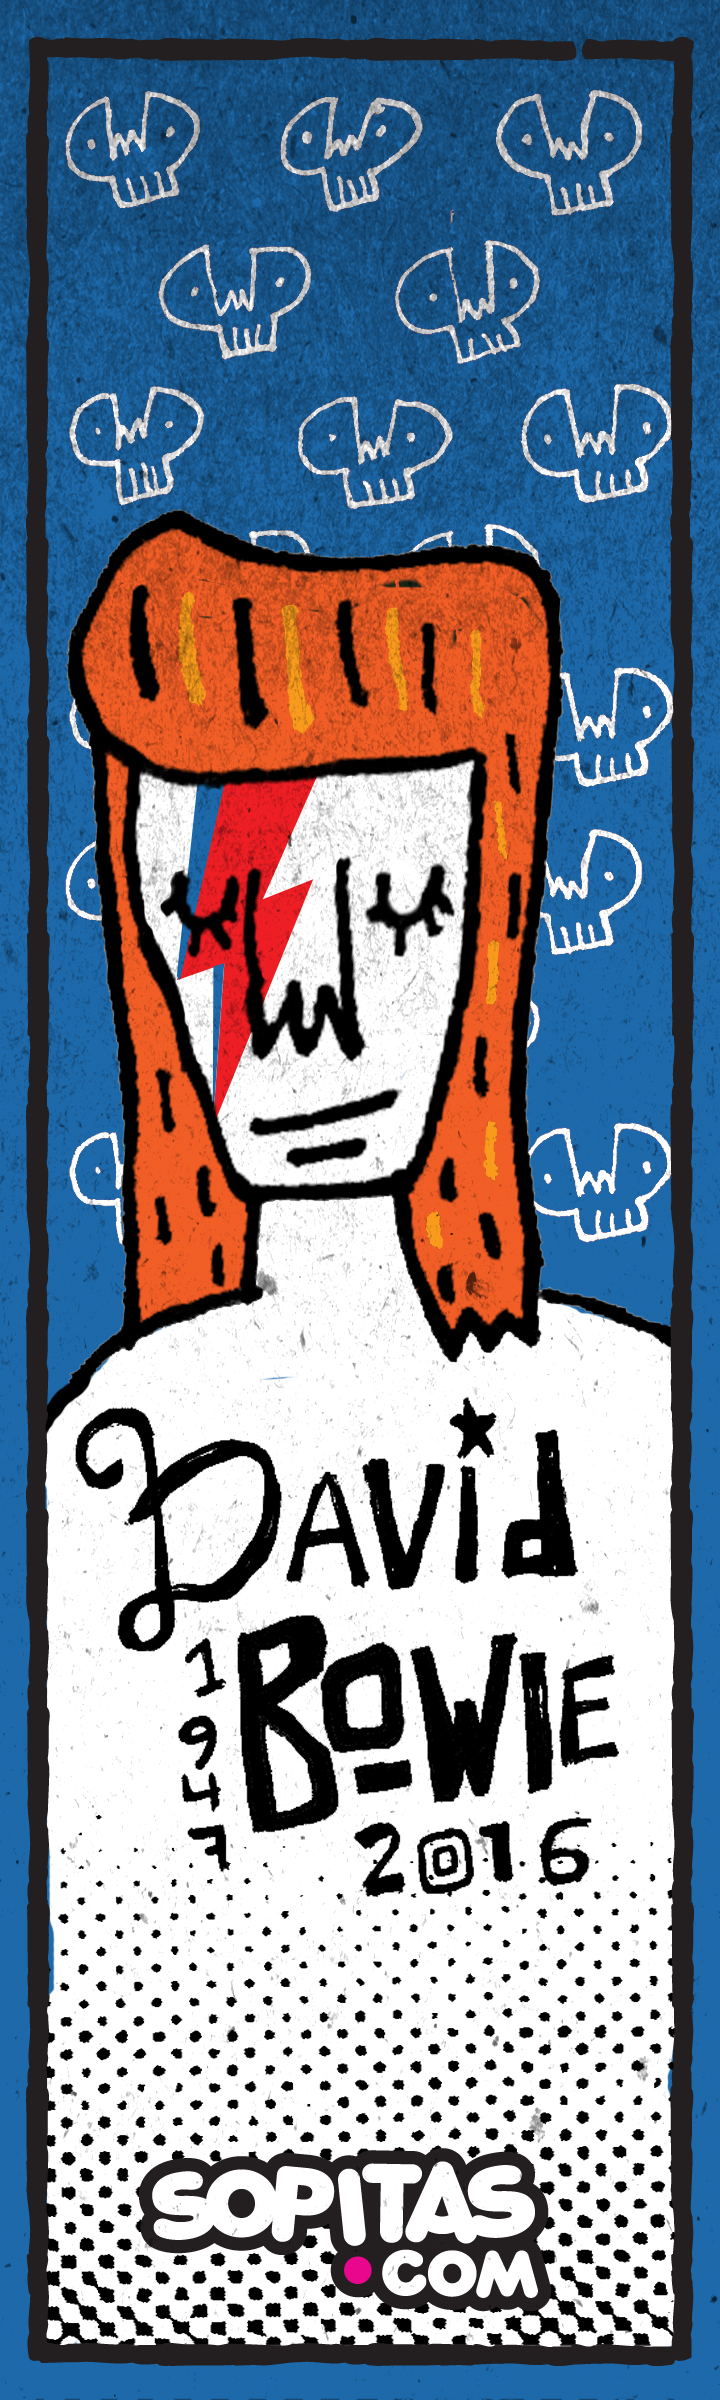 Bowie ofrenda musical